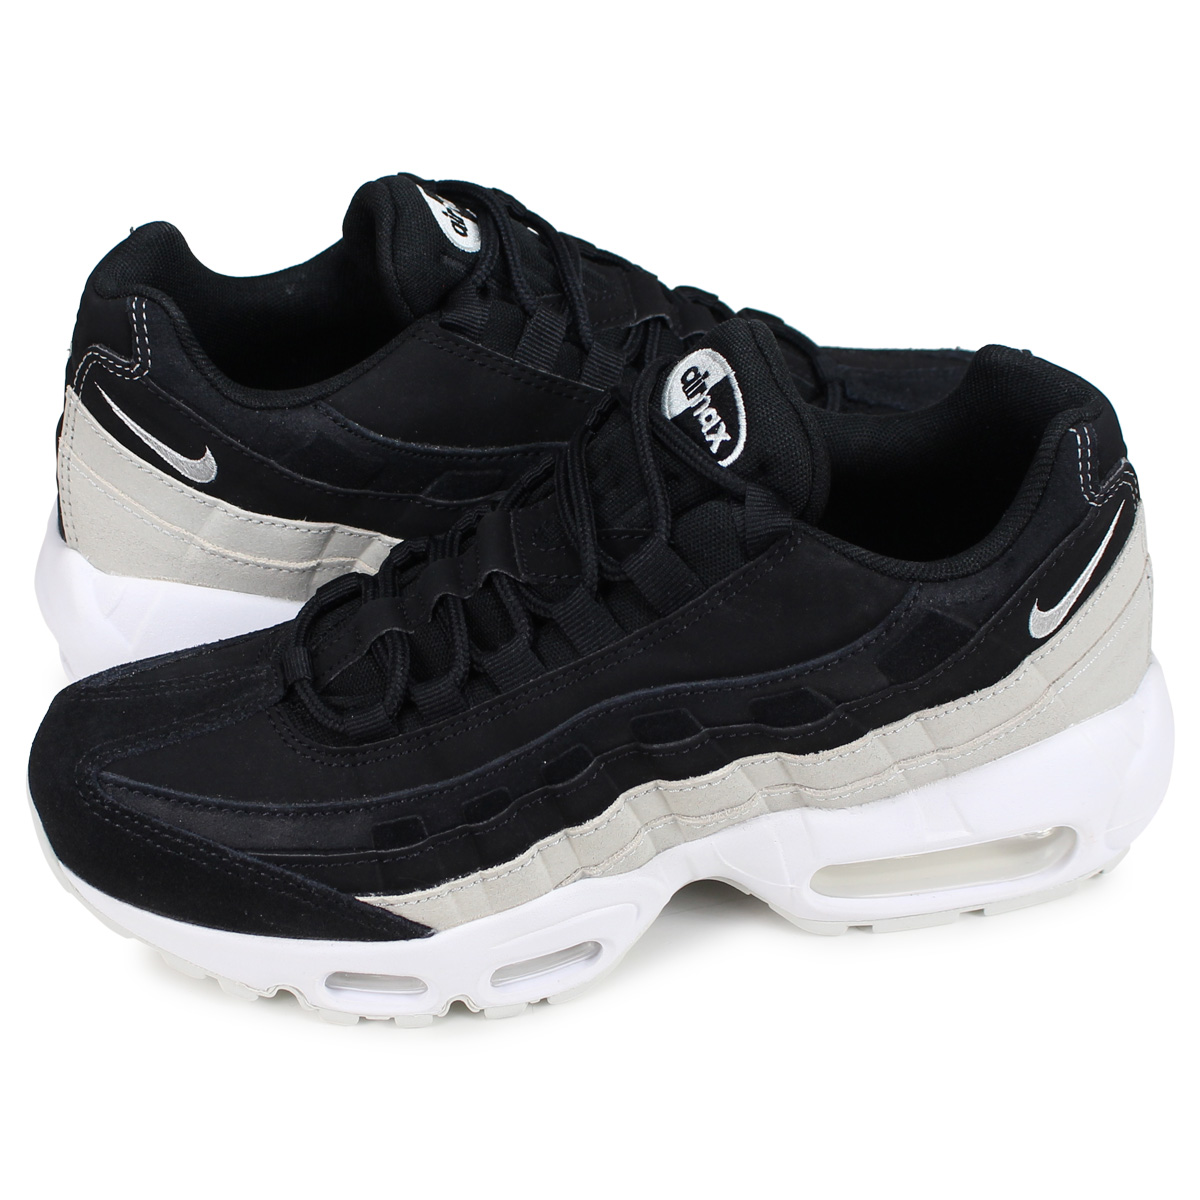 Nieuw ALLSPORTS: Nike NIKE Air Max 95 sneakers Lady's men WMNS AIR MAX PA-05